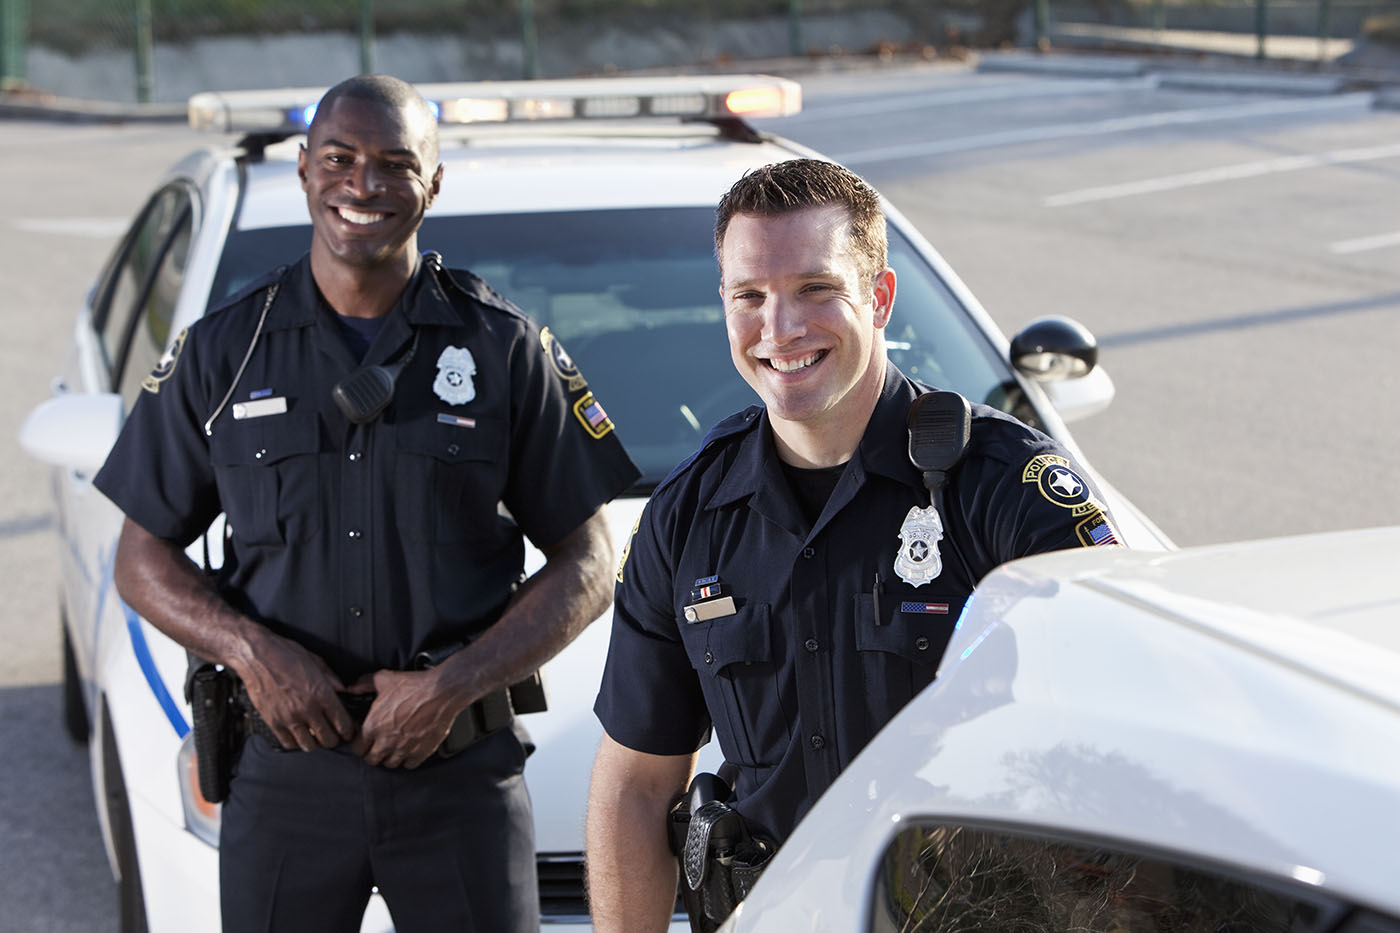 How to Become a Police Officer  Criminal Justice Degree Schools